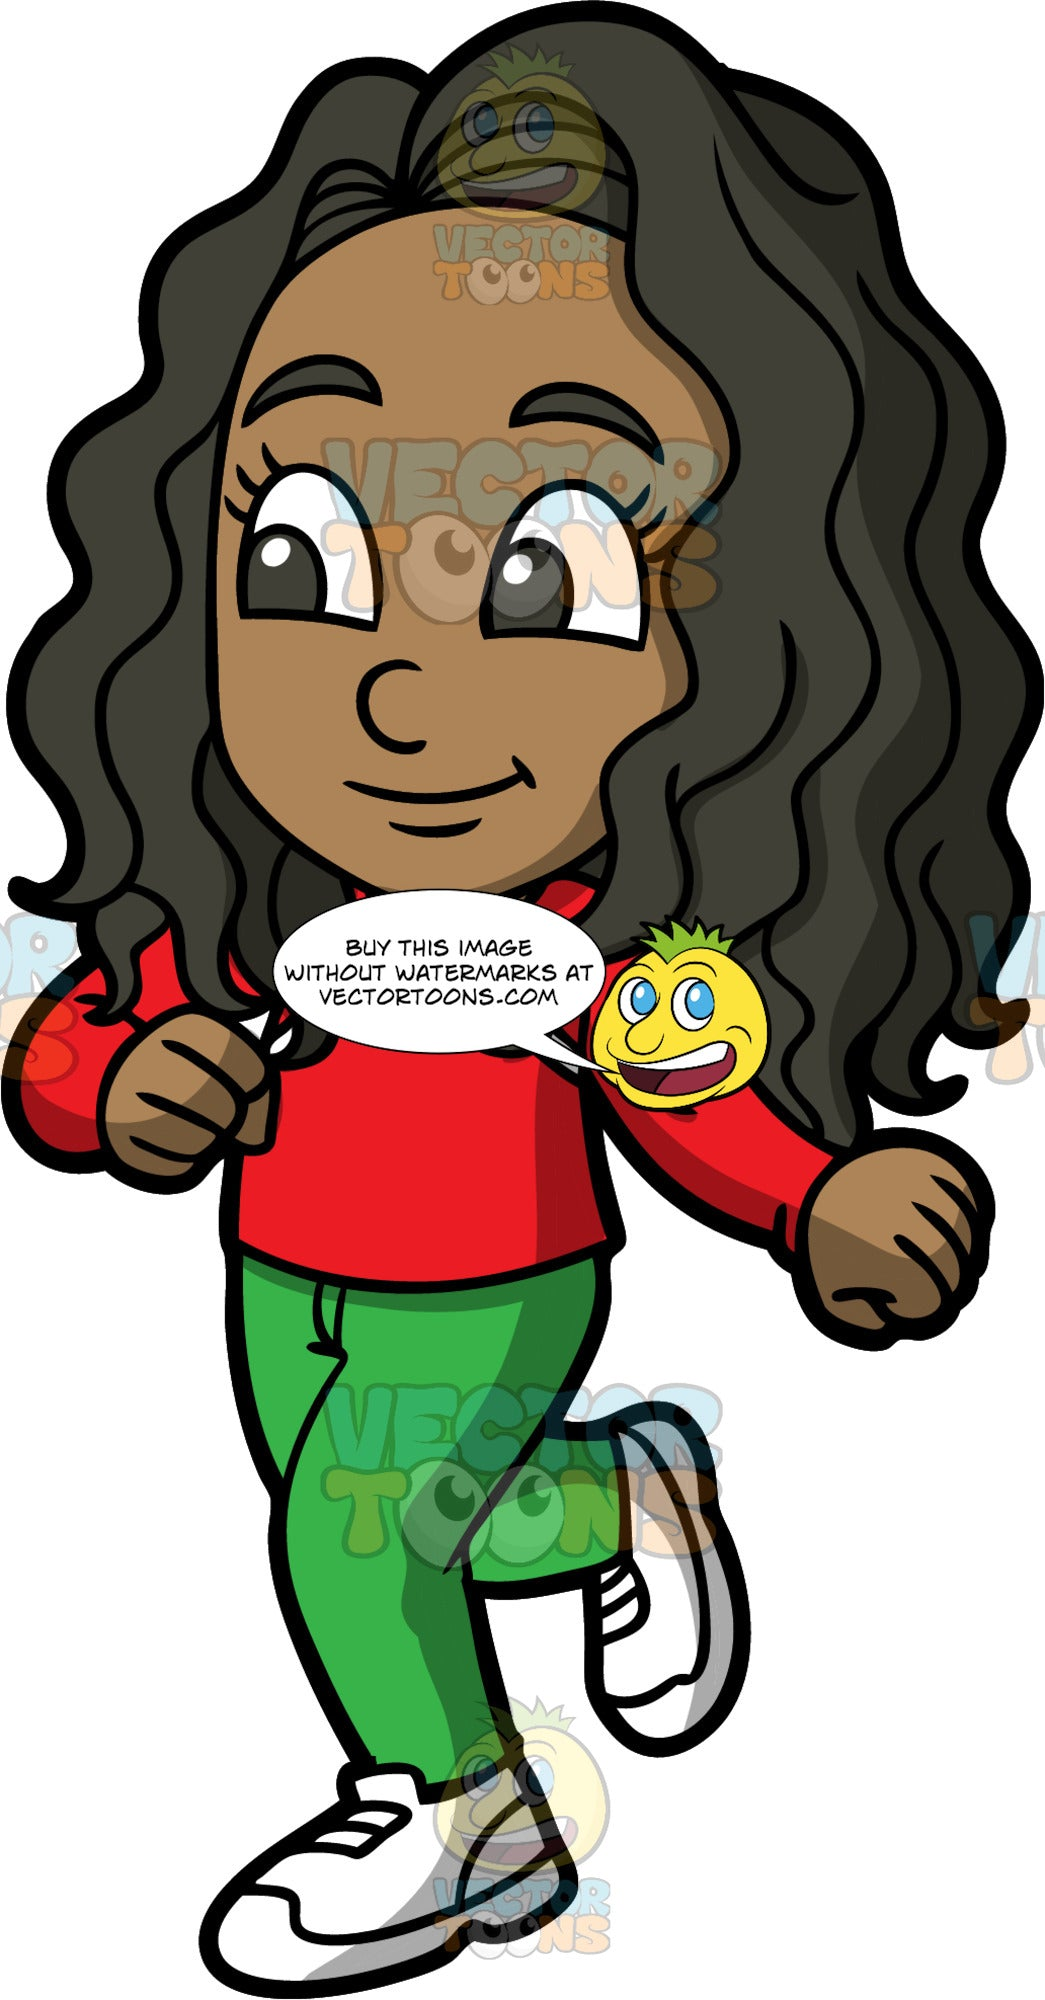 Young Maggy Going For A Jog. A black girl wearing green pants, a long sleeve red shirt, and white running shoes, getting some exercise by going for a jog